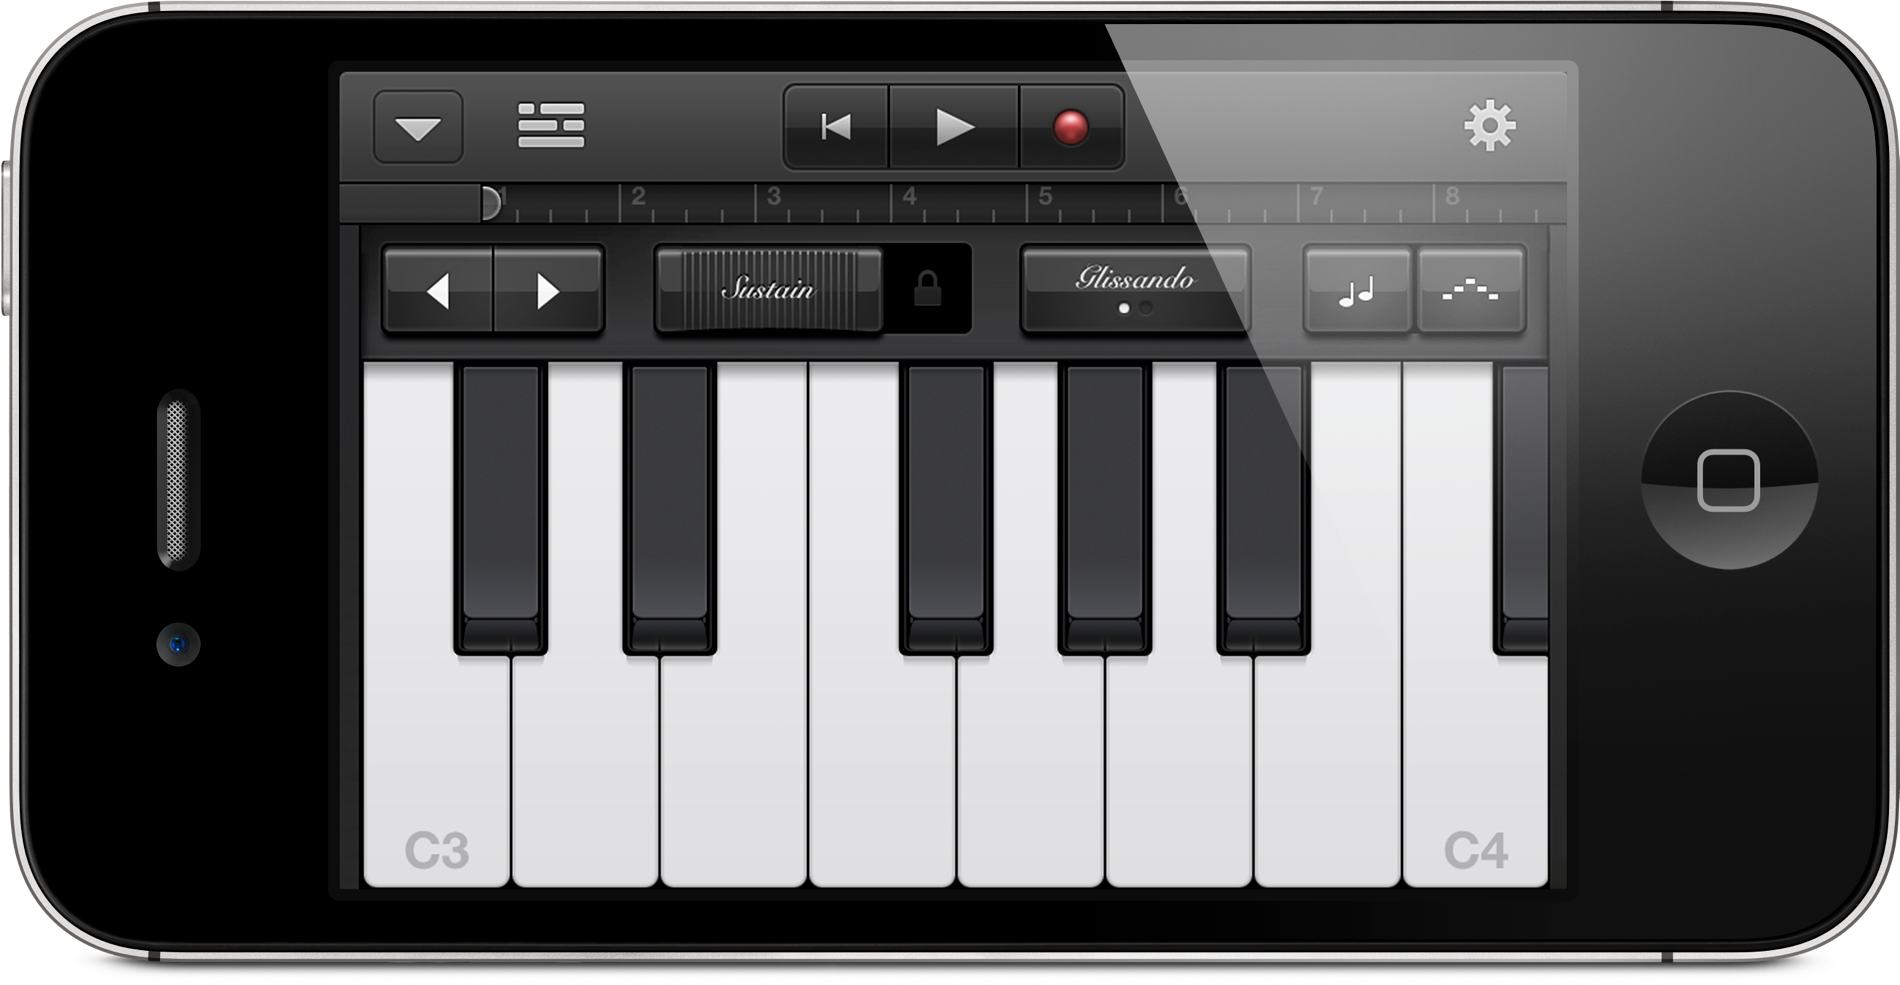 Handheld garageband apples mobile music maker on iphone ipod apples garageband music creation and amp simulation on ipad is now also on the companys handhelds with iphone 3gs 4 4s and ipod touch 3rd generation baditri Images